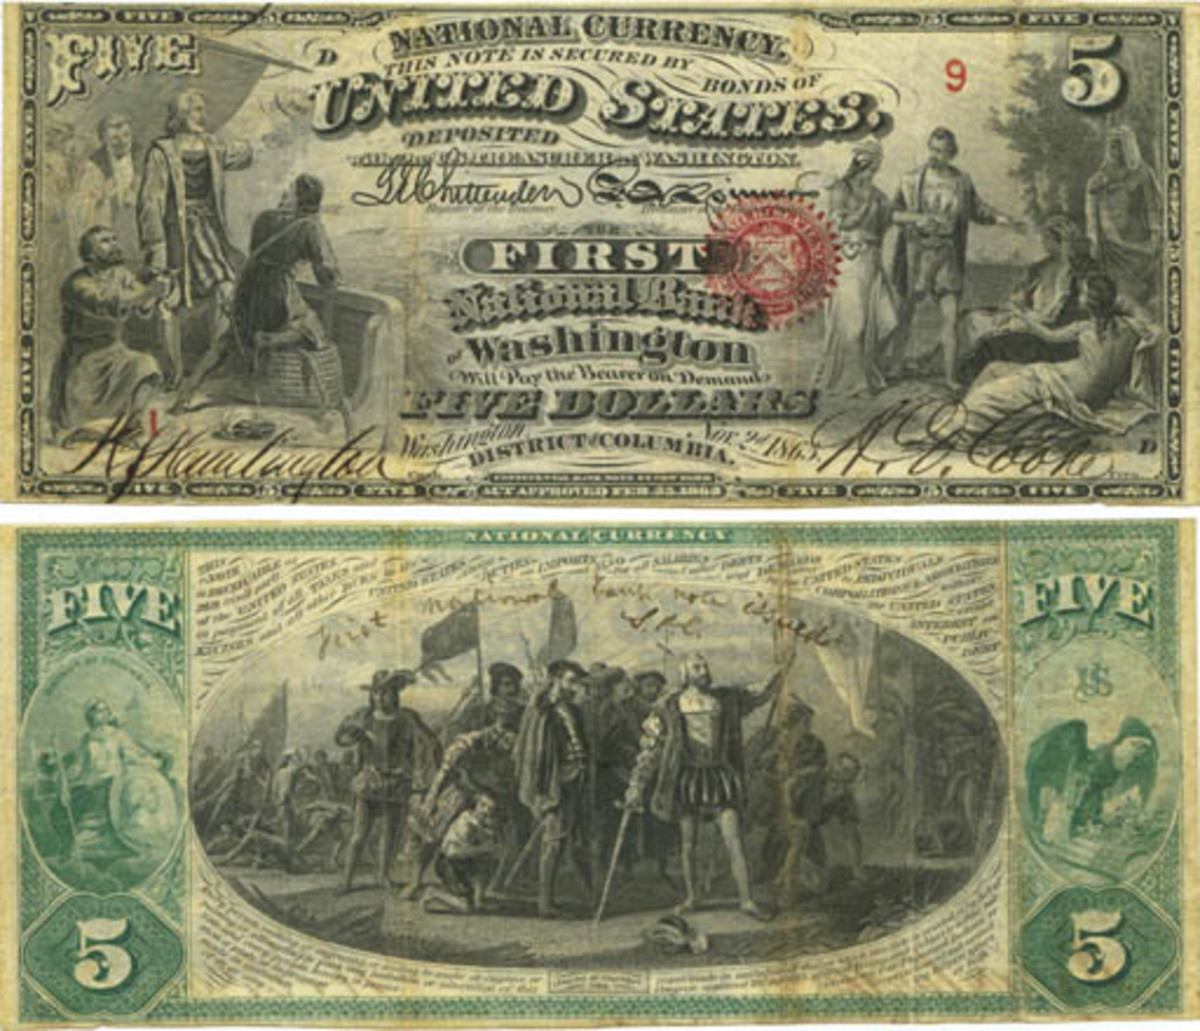 Bottom note from the first sheet of $5 National Bank Notes, Treasury sheet serial 9—the first Treasury serial used, bank sheet serial 1, plate position D. (Photo courtesy of Mark Hotz)